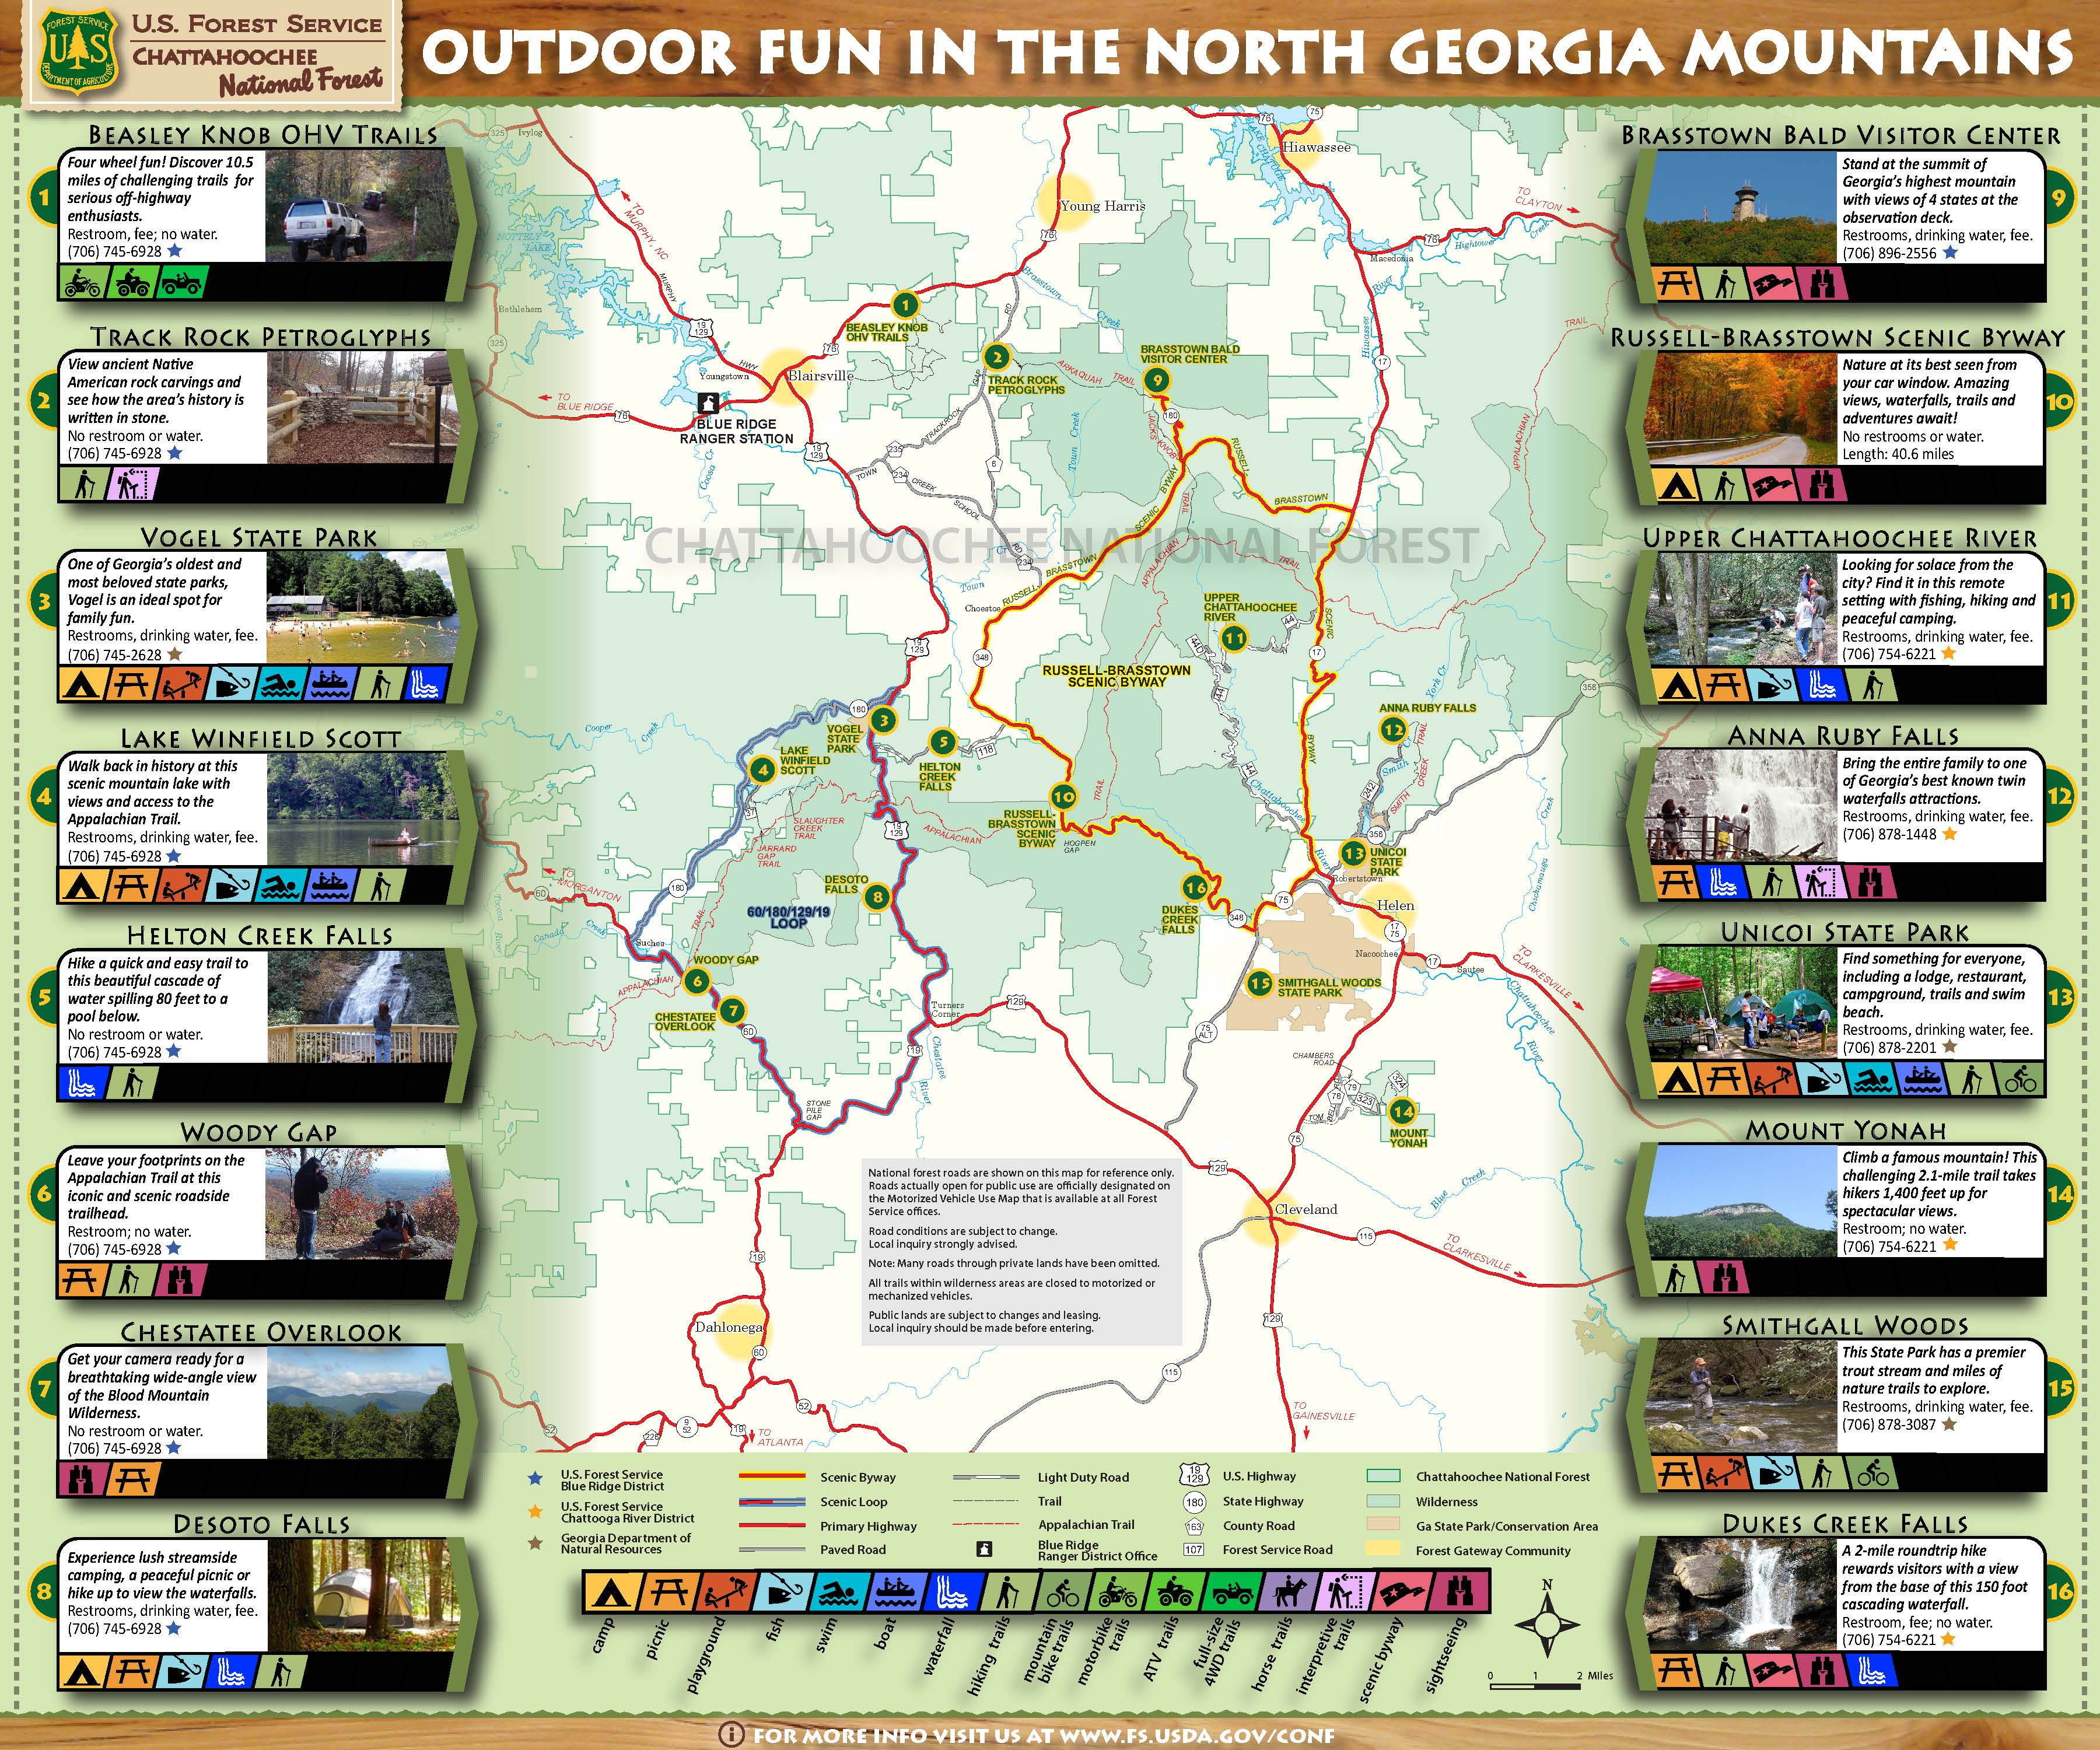 Chattahoochee-Oconee National Forests - Home